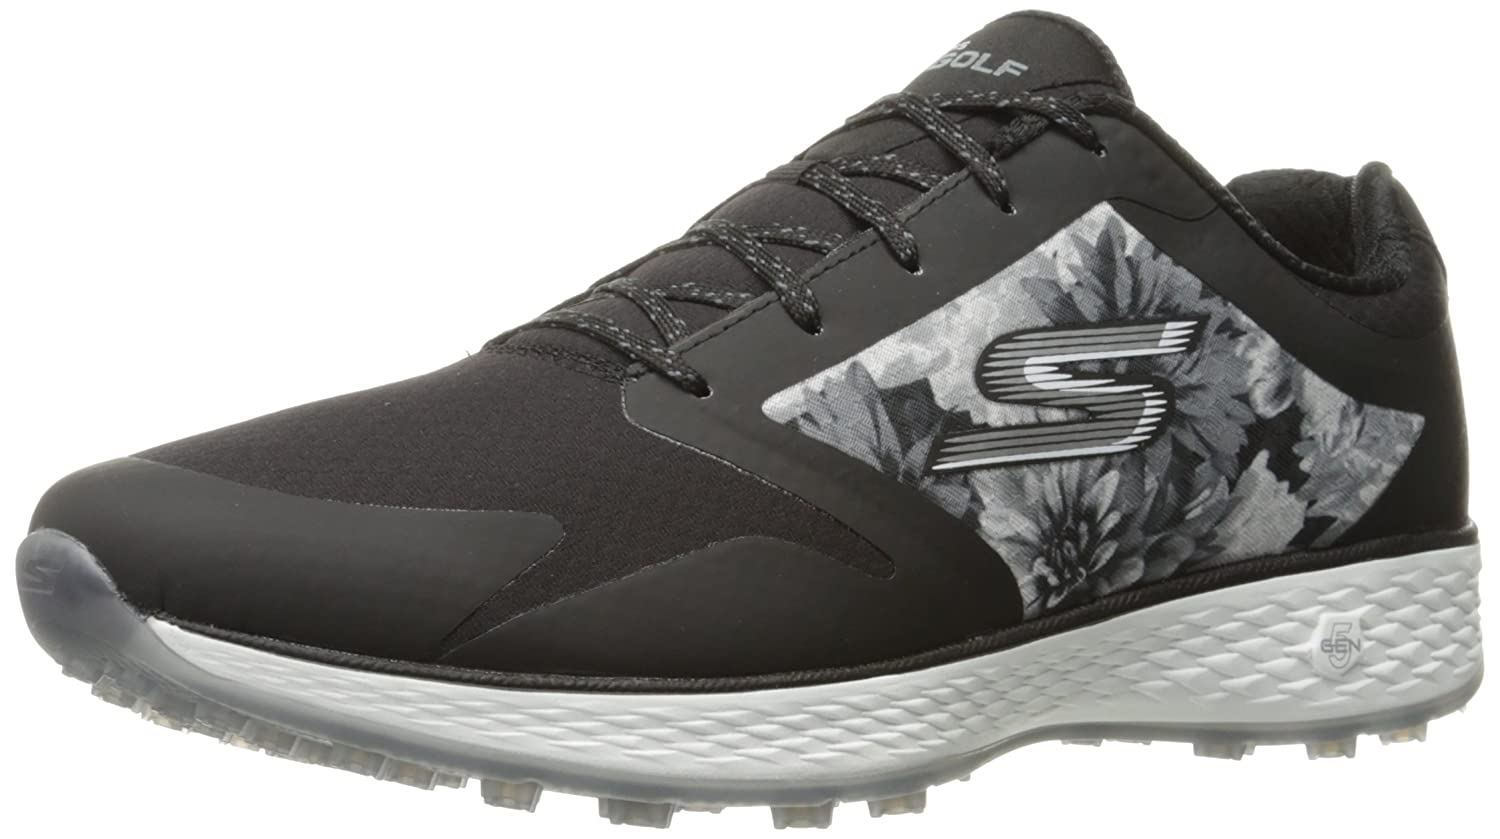 Skechers Women's Go Golf Birdie Golf Shoe Tropic B01JJ1H8DC 7 B(M) US|Black/White Tropic Shoe f82336